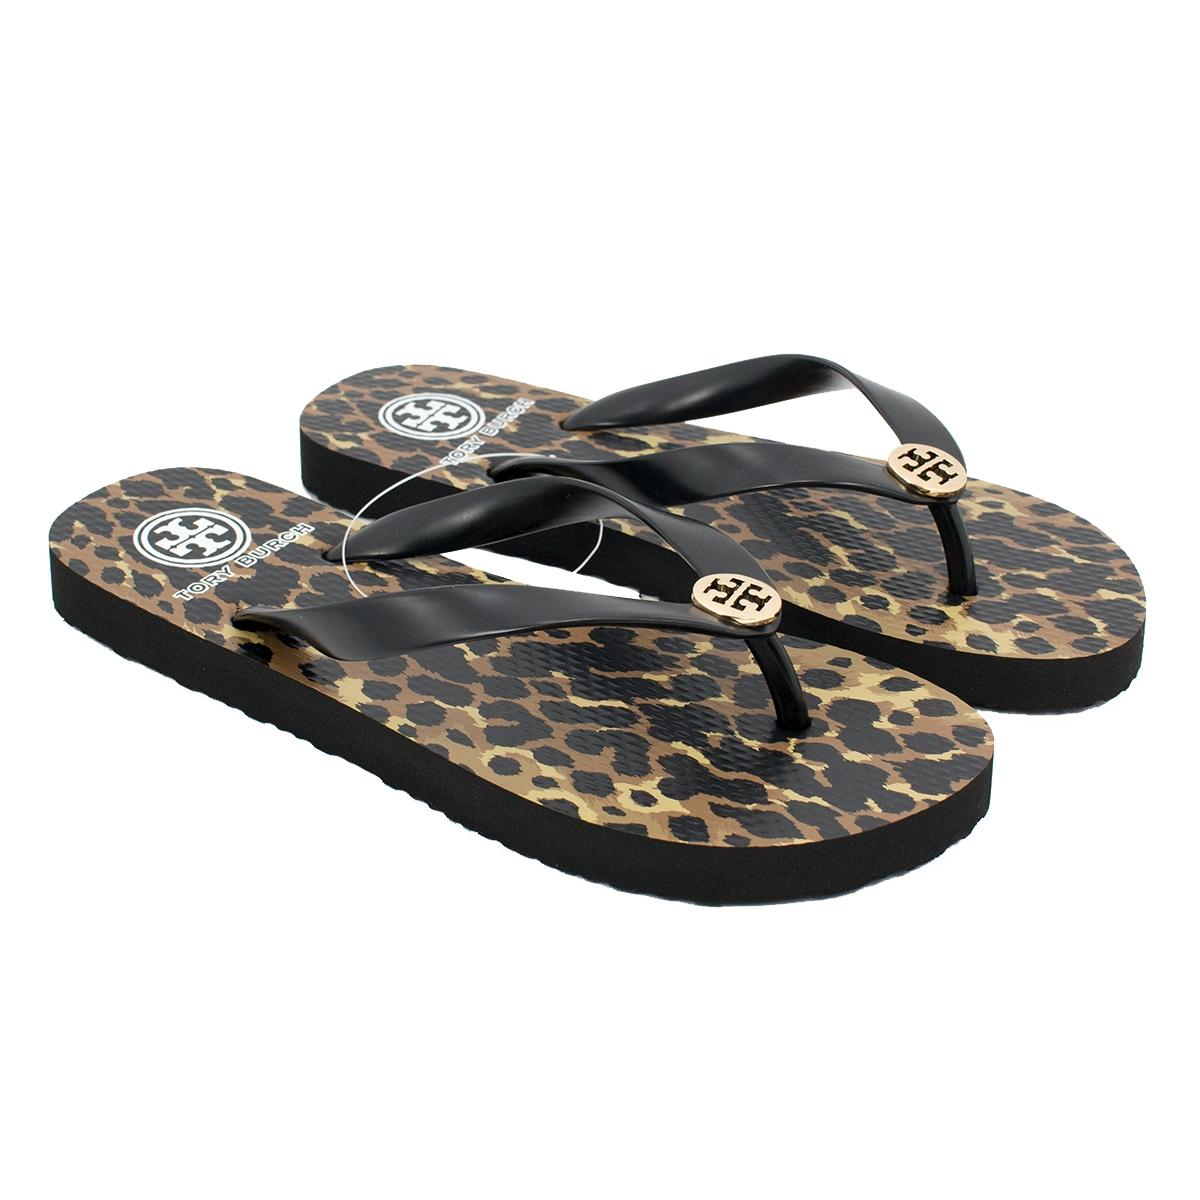 755db092860bd Tory Burch Multicolor Logo Rubber Rubber Rubber Flip Flop Sandals Size US 9  Regular (M